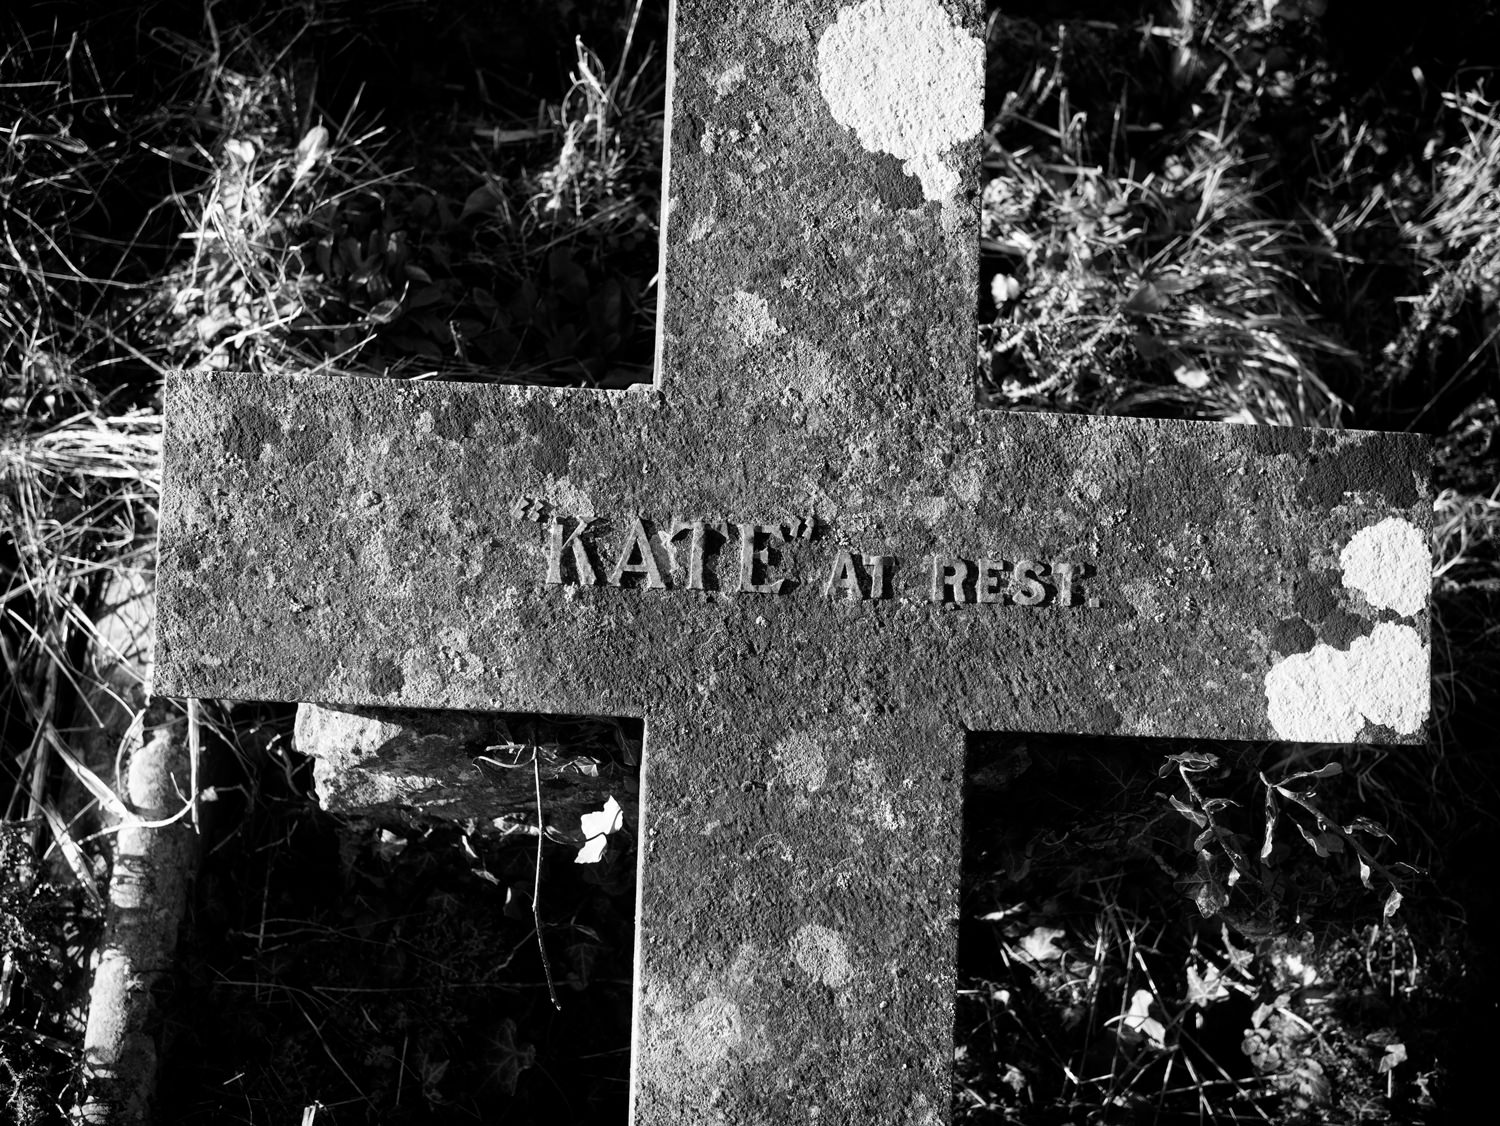 "Part of a cross from a grave lying flat on the grass. It's plain, with just the words '""Kate"" at rest' across the middle."